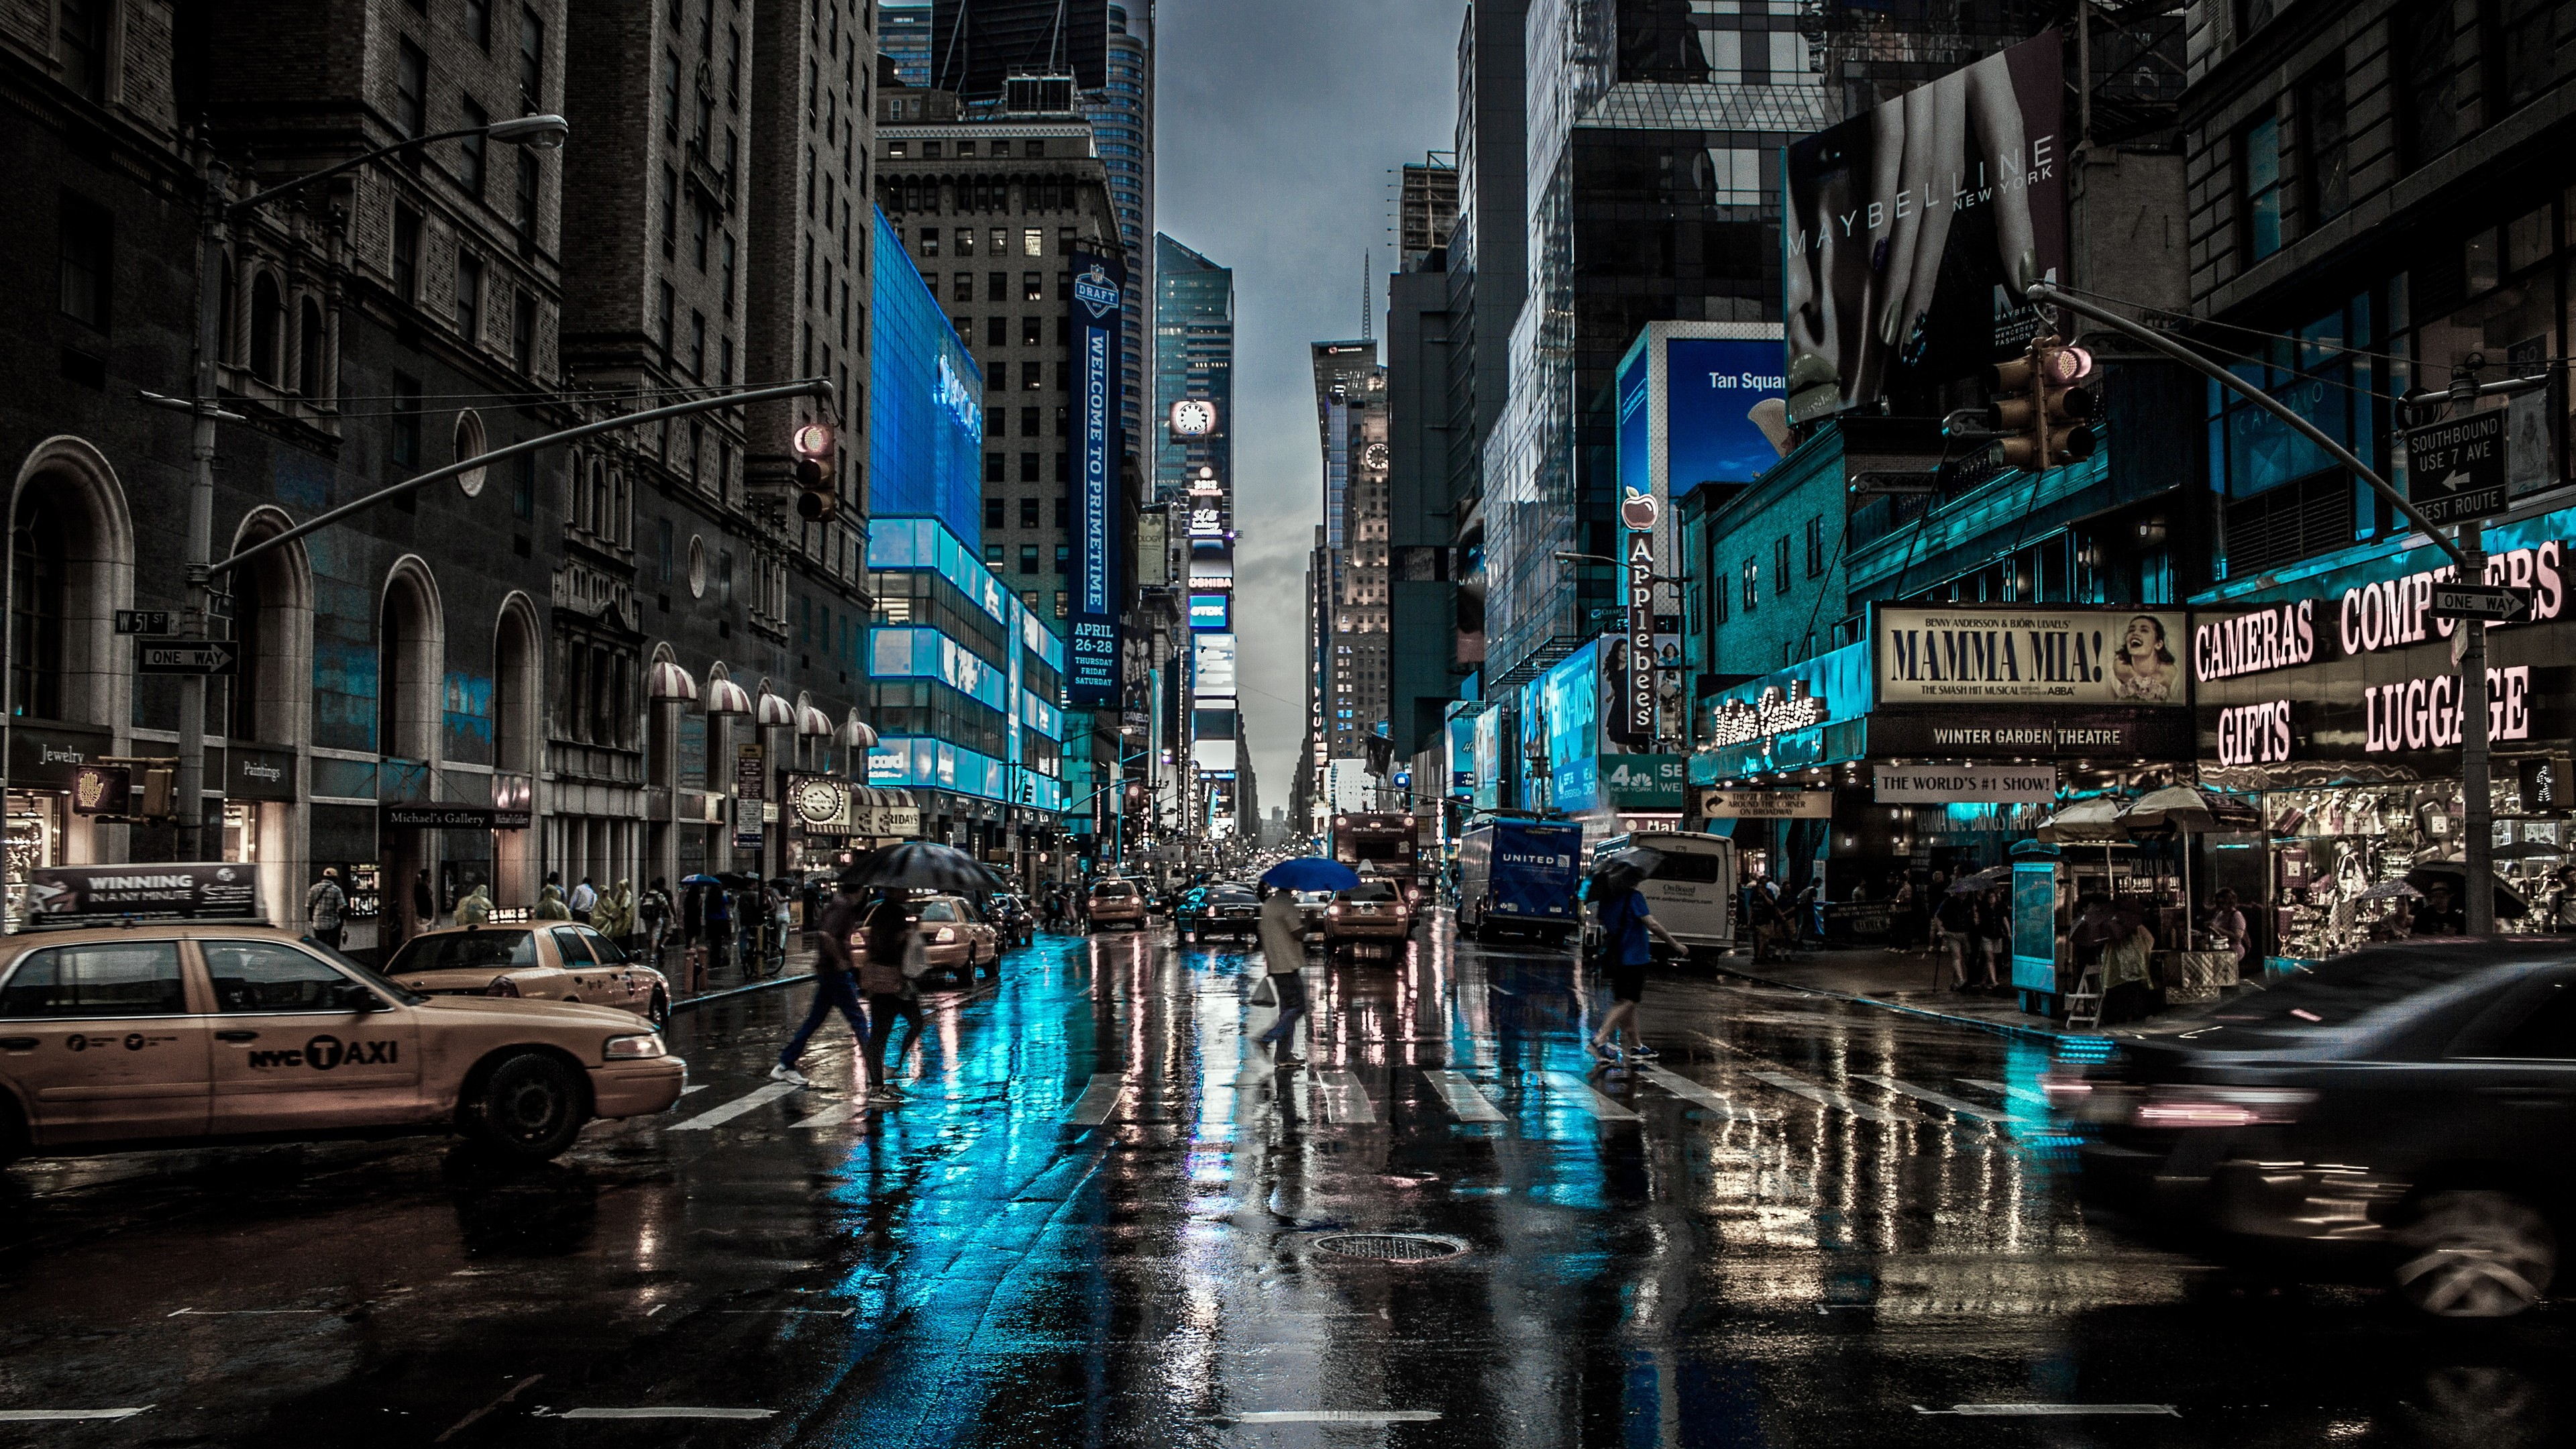 Wallpaper 4k New York City Street Reflection Motion Blur Dark 4k 4k Wallpapers City Wallpapers Dark Wallpapers Hd Wallpapers New York Wallpapers Photography Wallpapers Reflection Wallpapers Street Wallpapers World Wallpapers